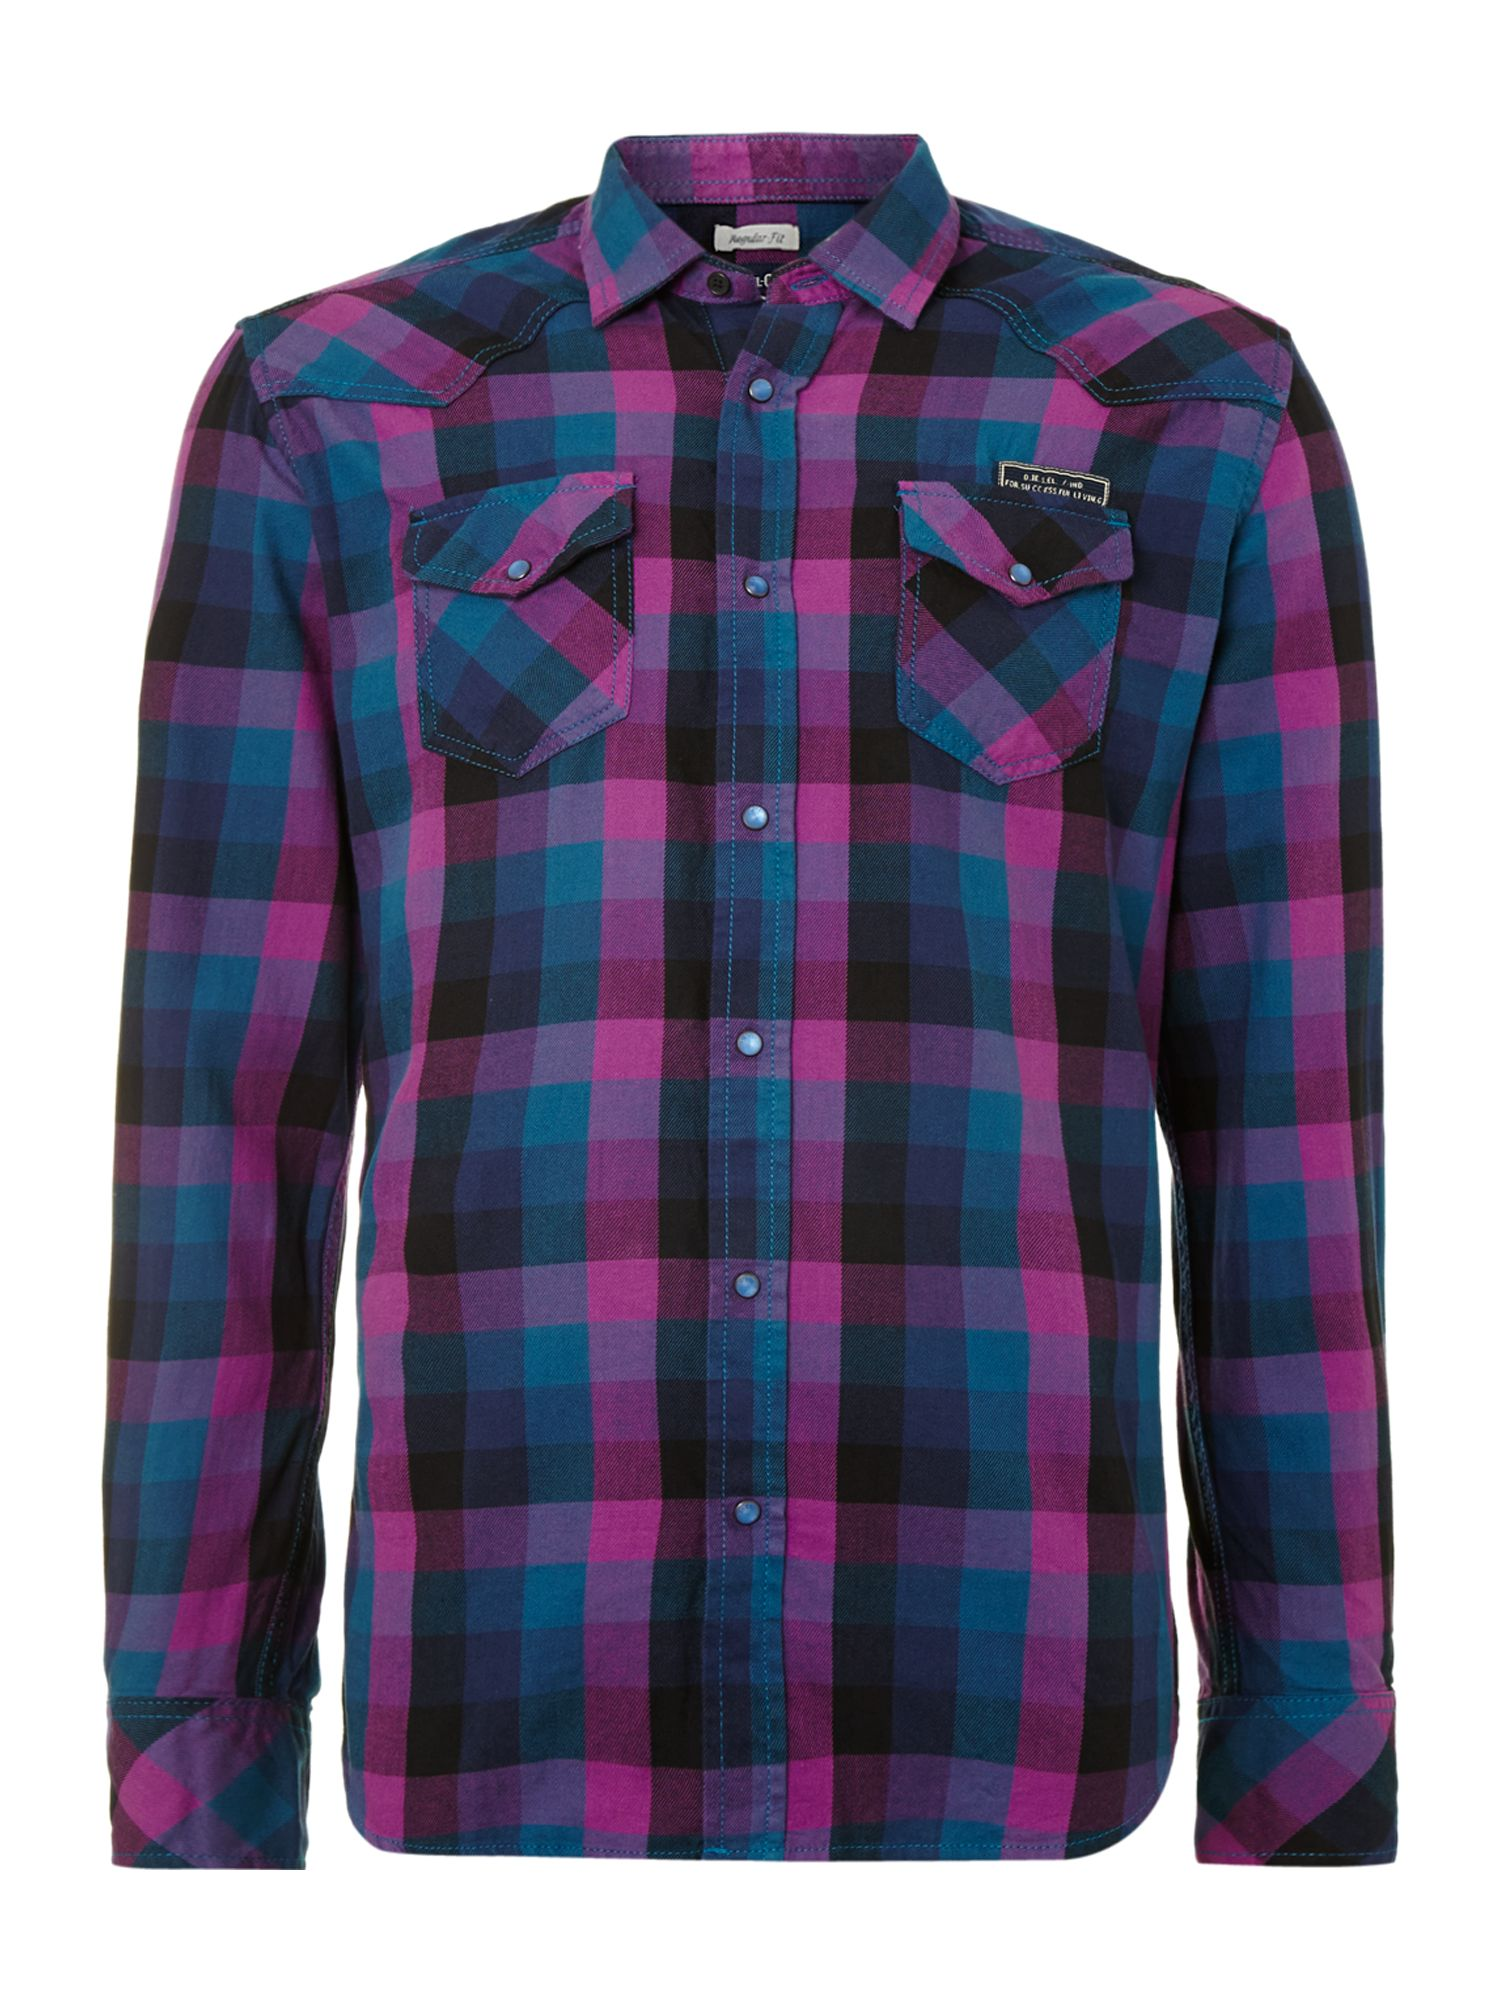 Diesel Check Shirt In Purple For Men Lyst